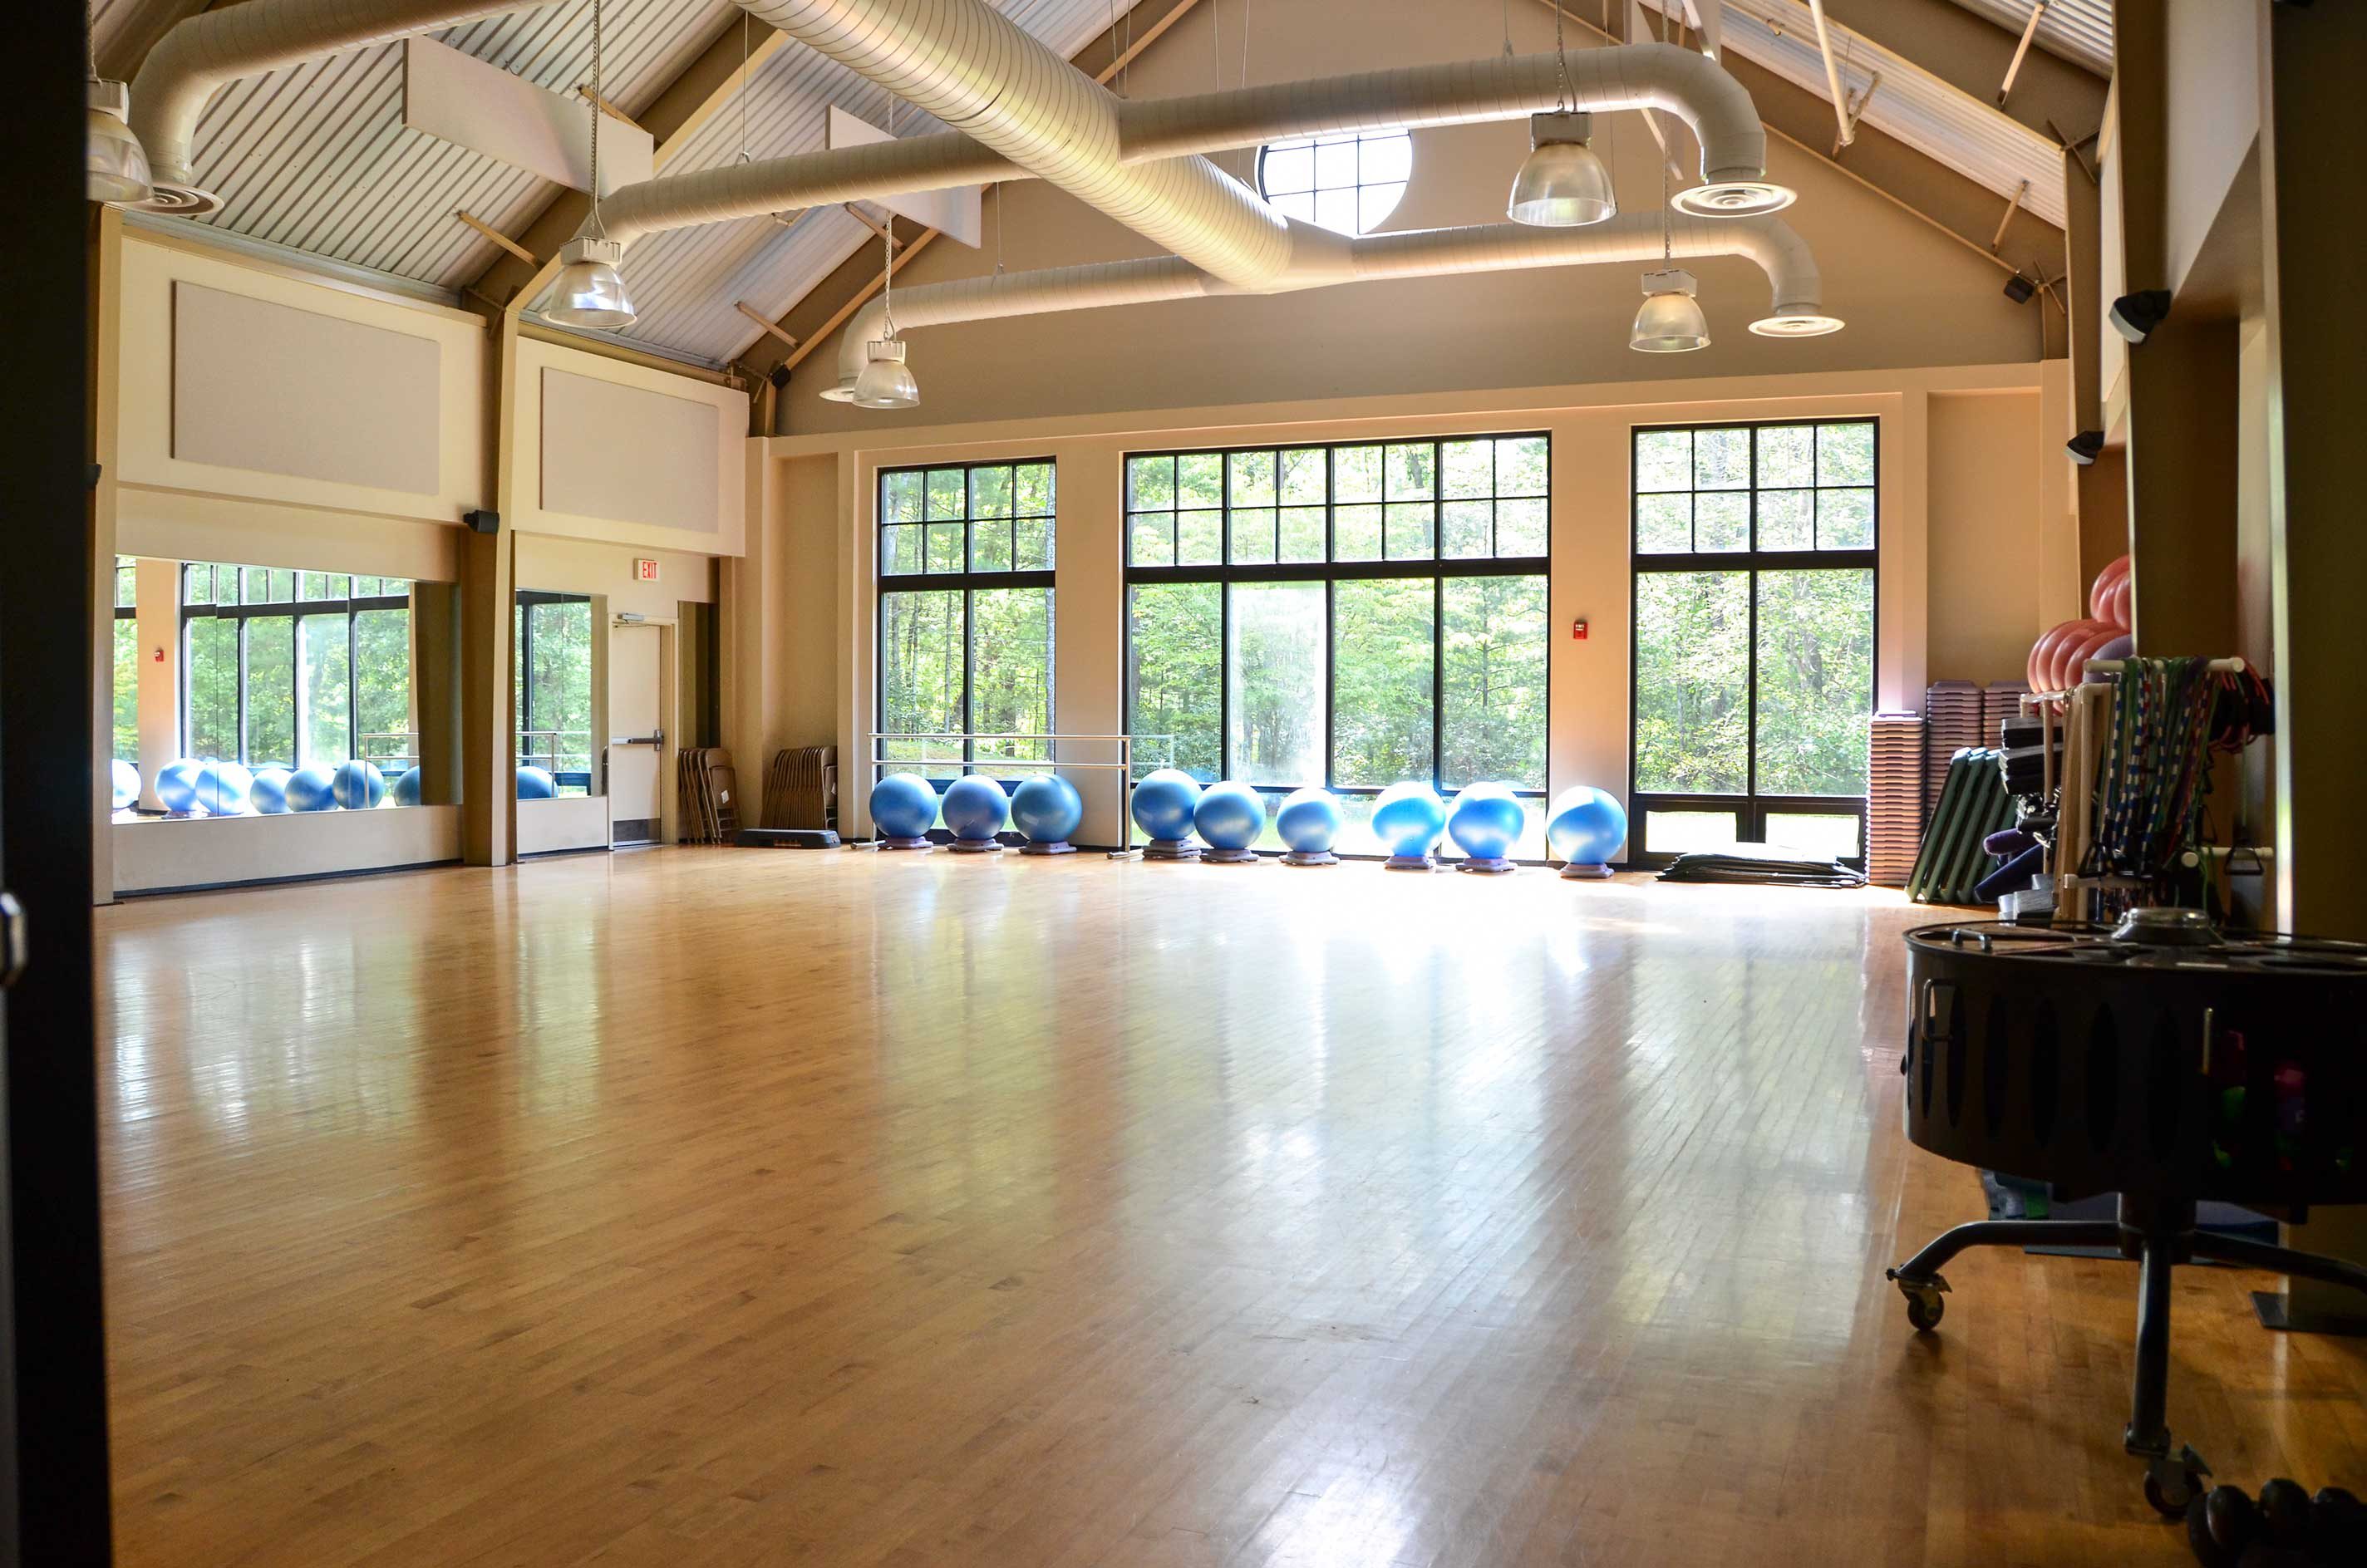 Get in on a group fitness class!